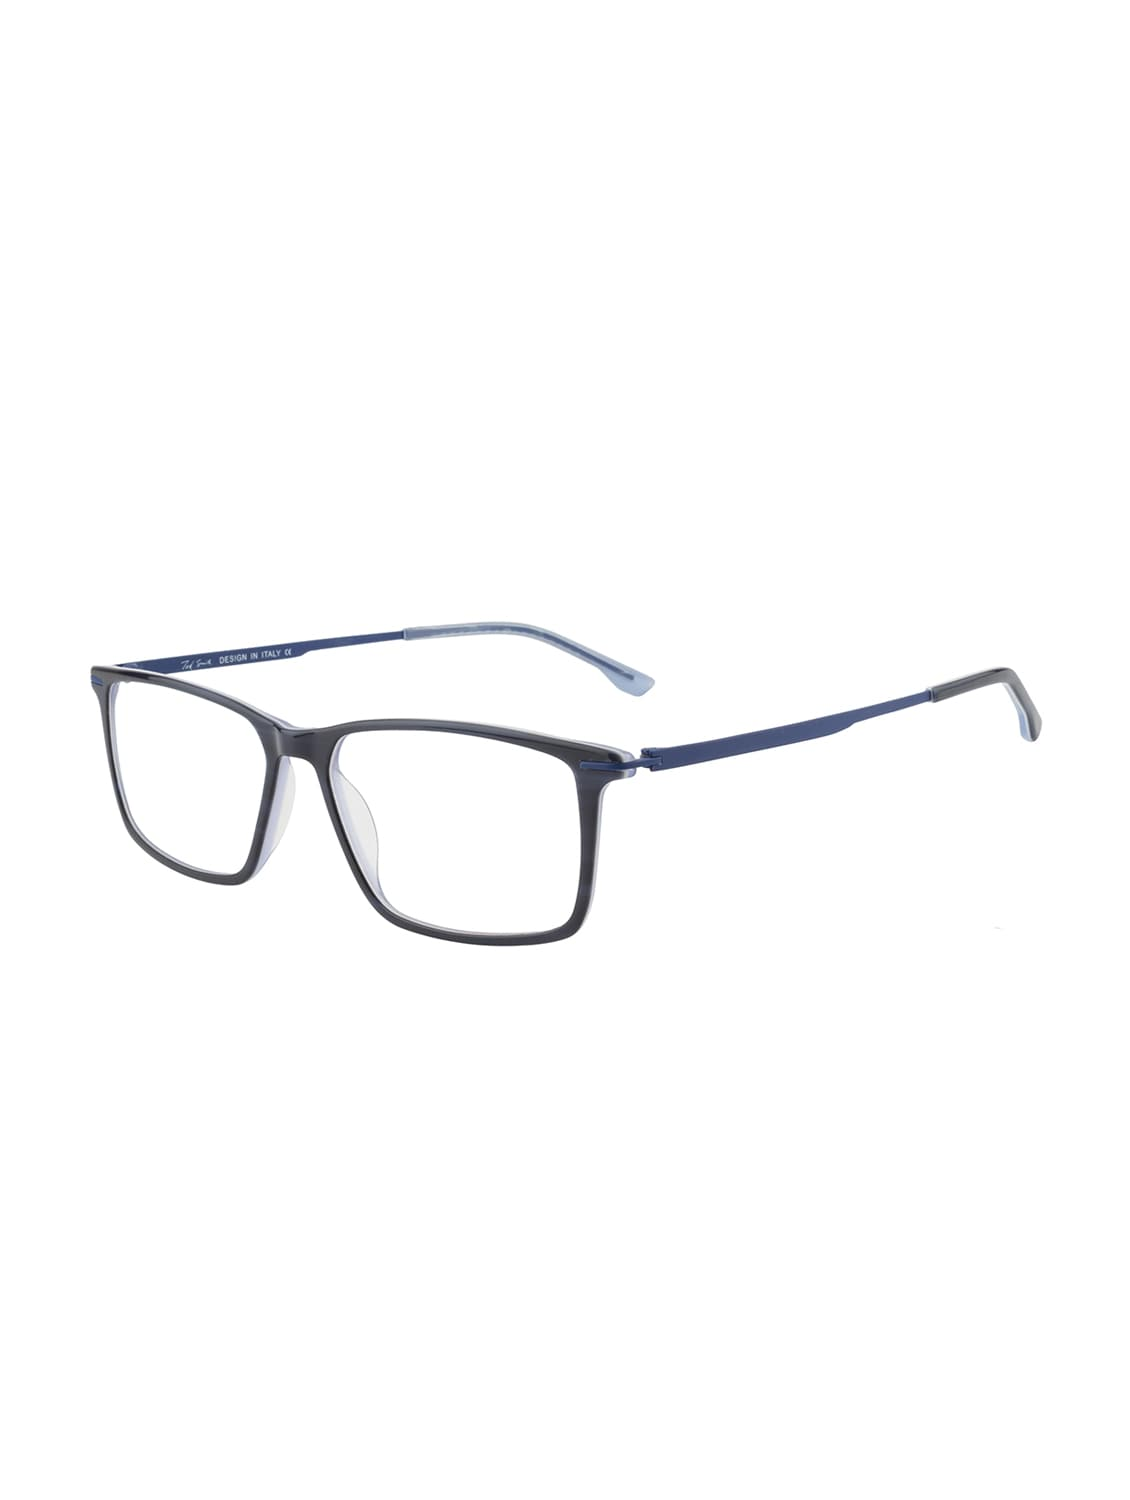 c04ccc25c8 Buy Ted Smith Wayfarer Frames by Ted Smith - Online shopping for Men  Spectacle Frames in India